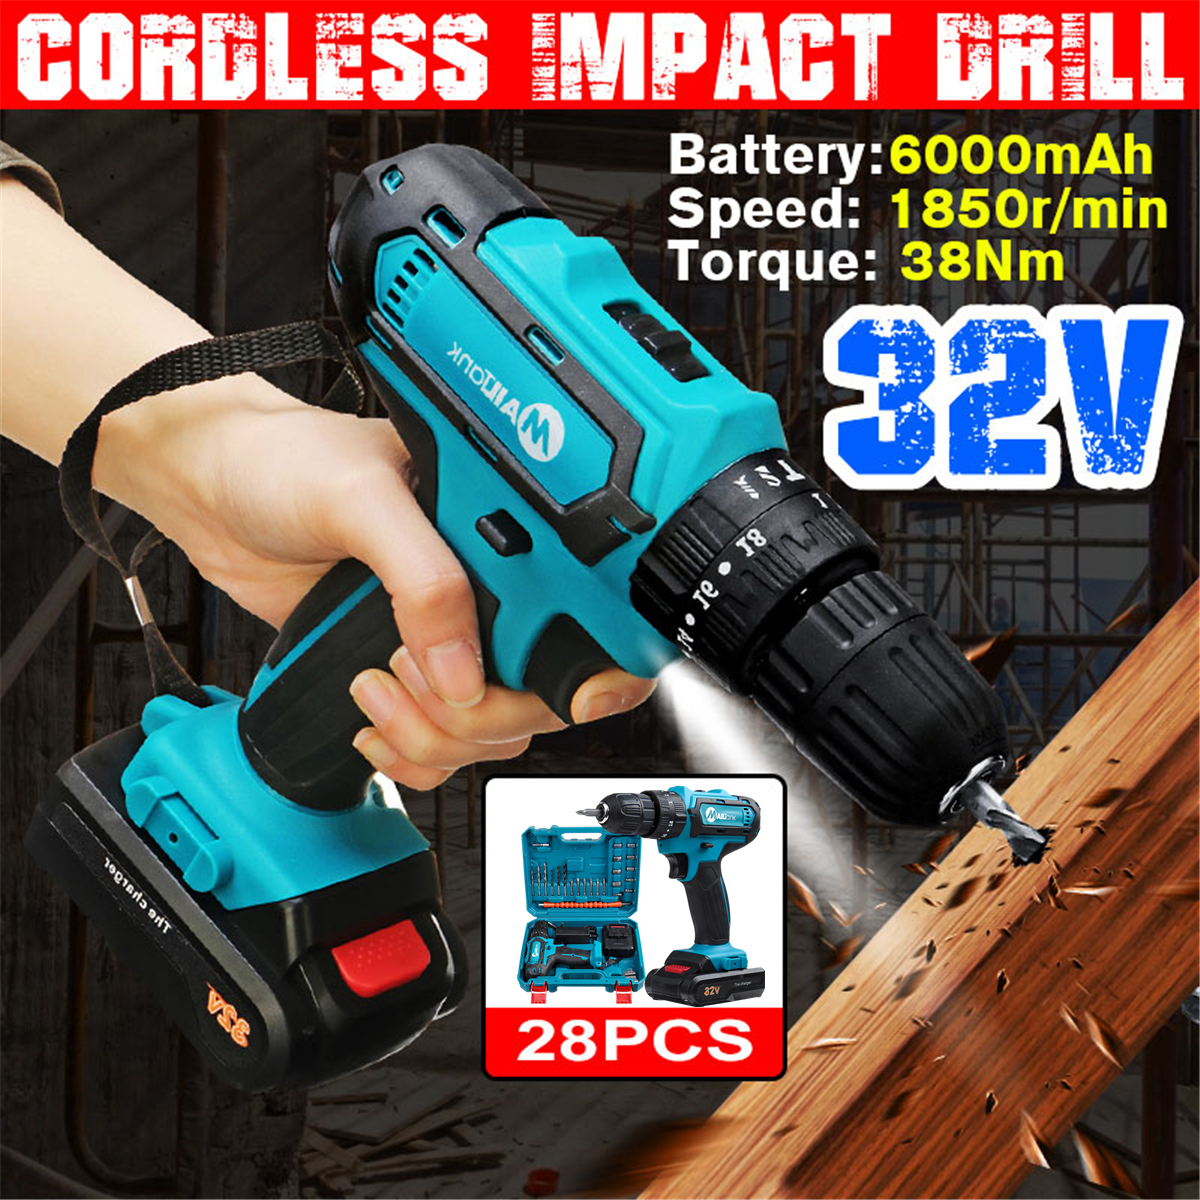 32V 2-Speed 6000mah Hanmmer Impact Drill  Electric Cordless Drill 3IN1 Screwdriver with 1/2 Li-Ion Battery